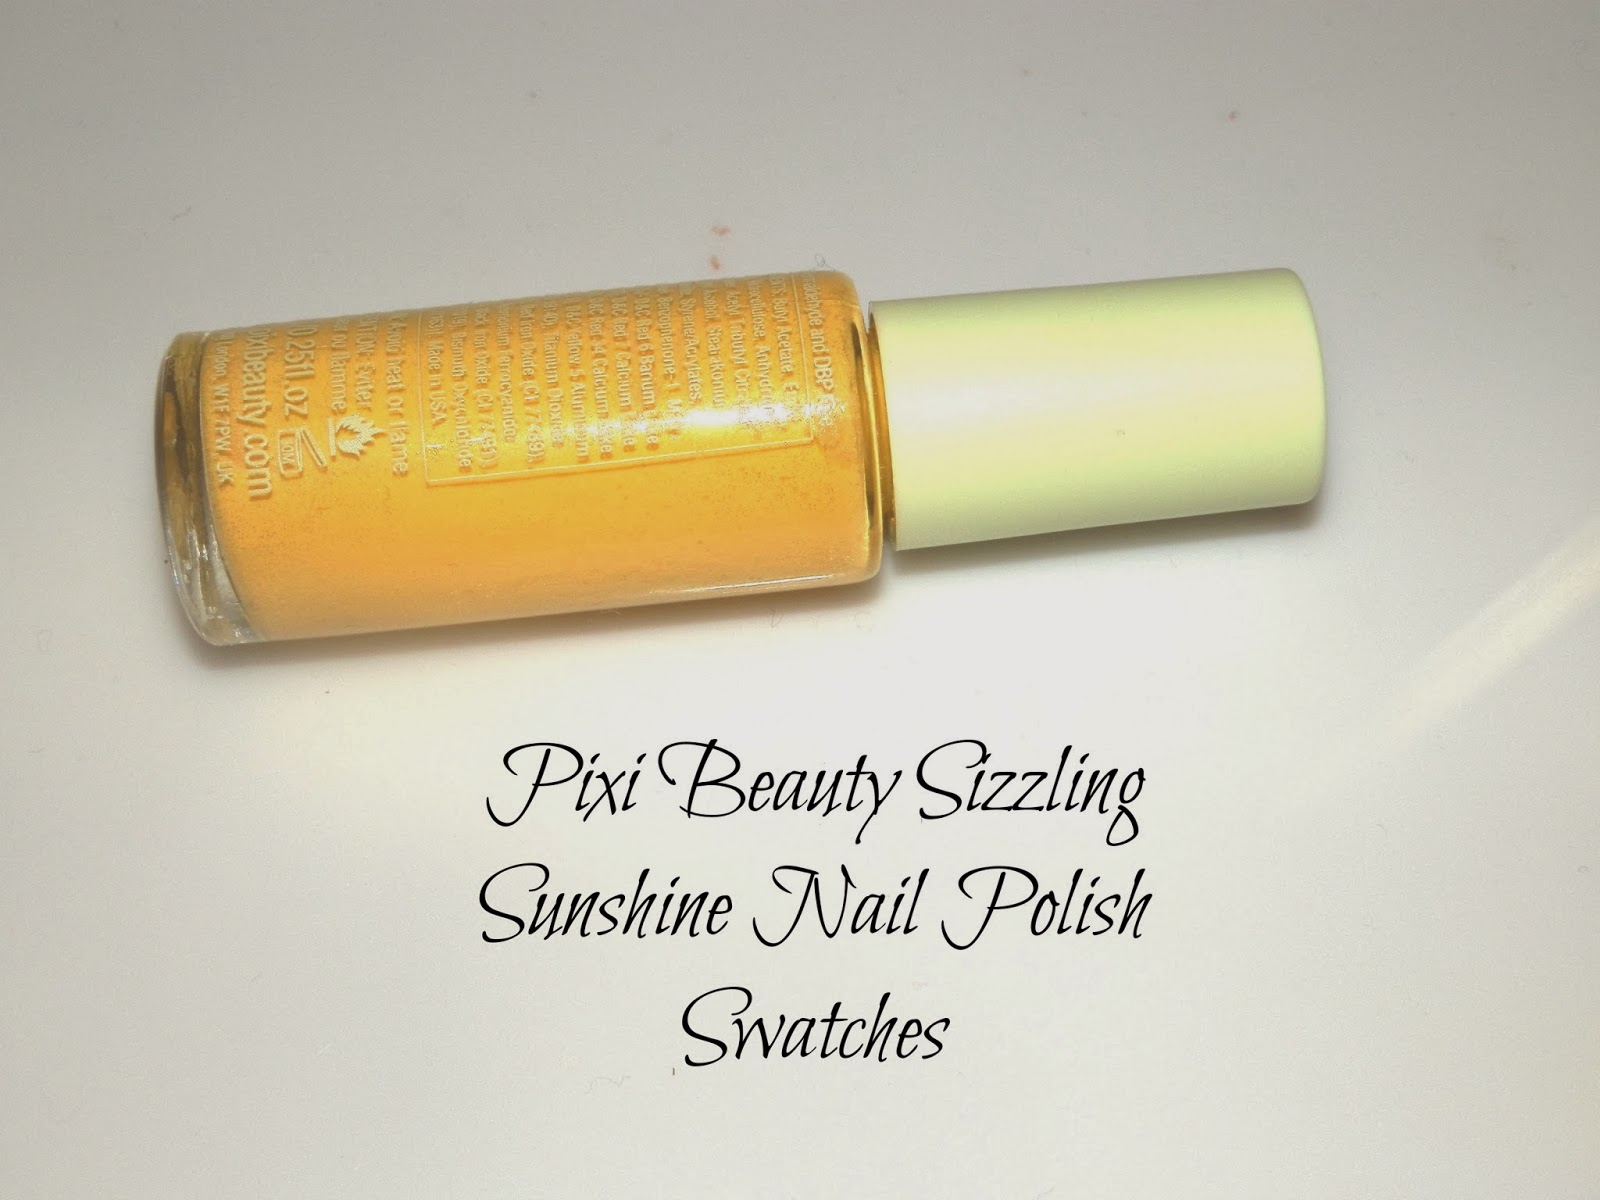 Pixi Beauty Sizzling Sunshine Nail Polish Swatches